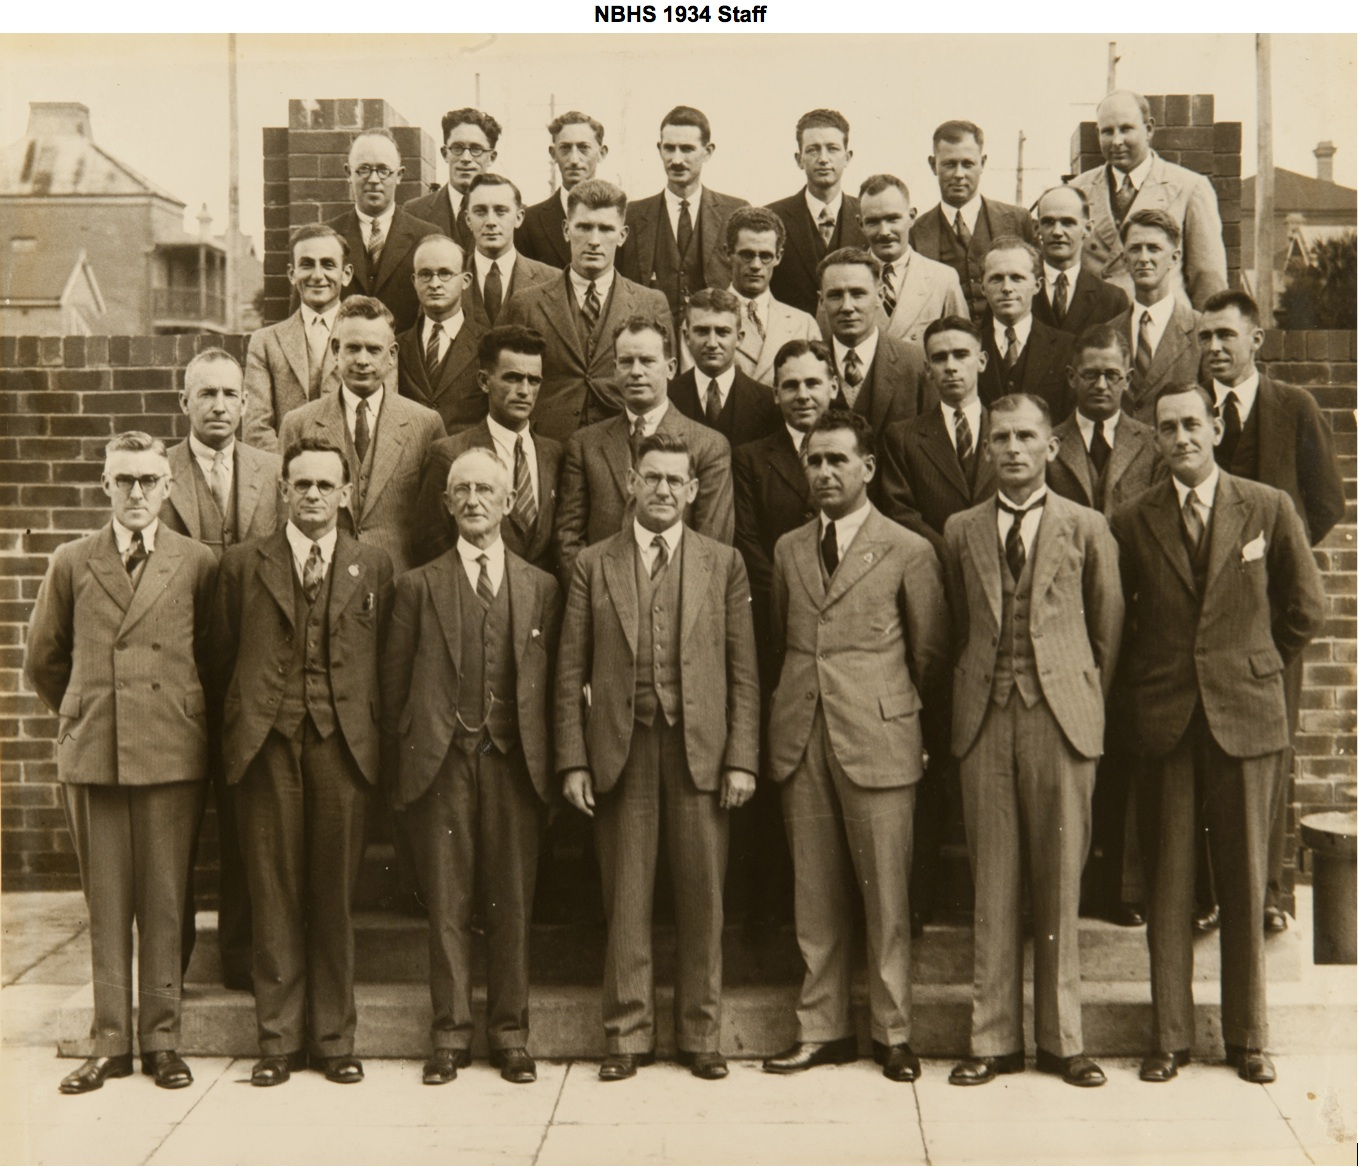 NBHS 1934 Staff